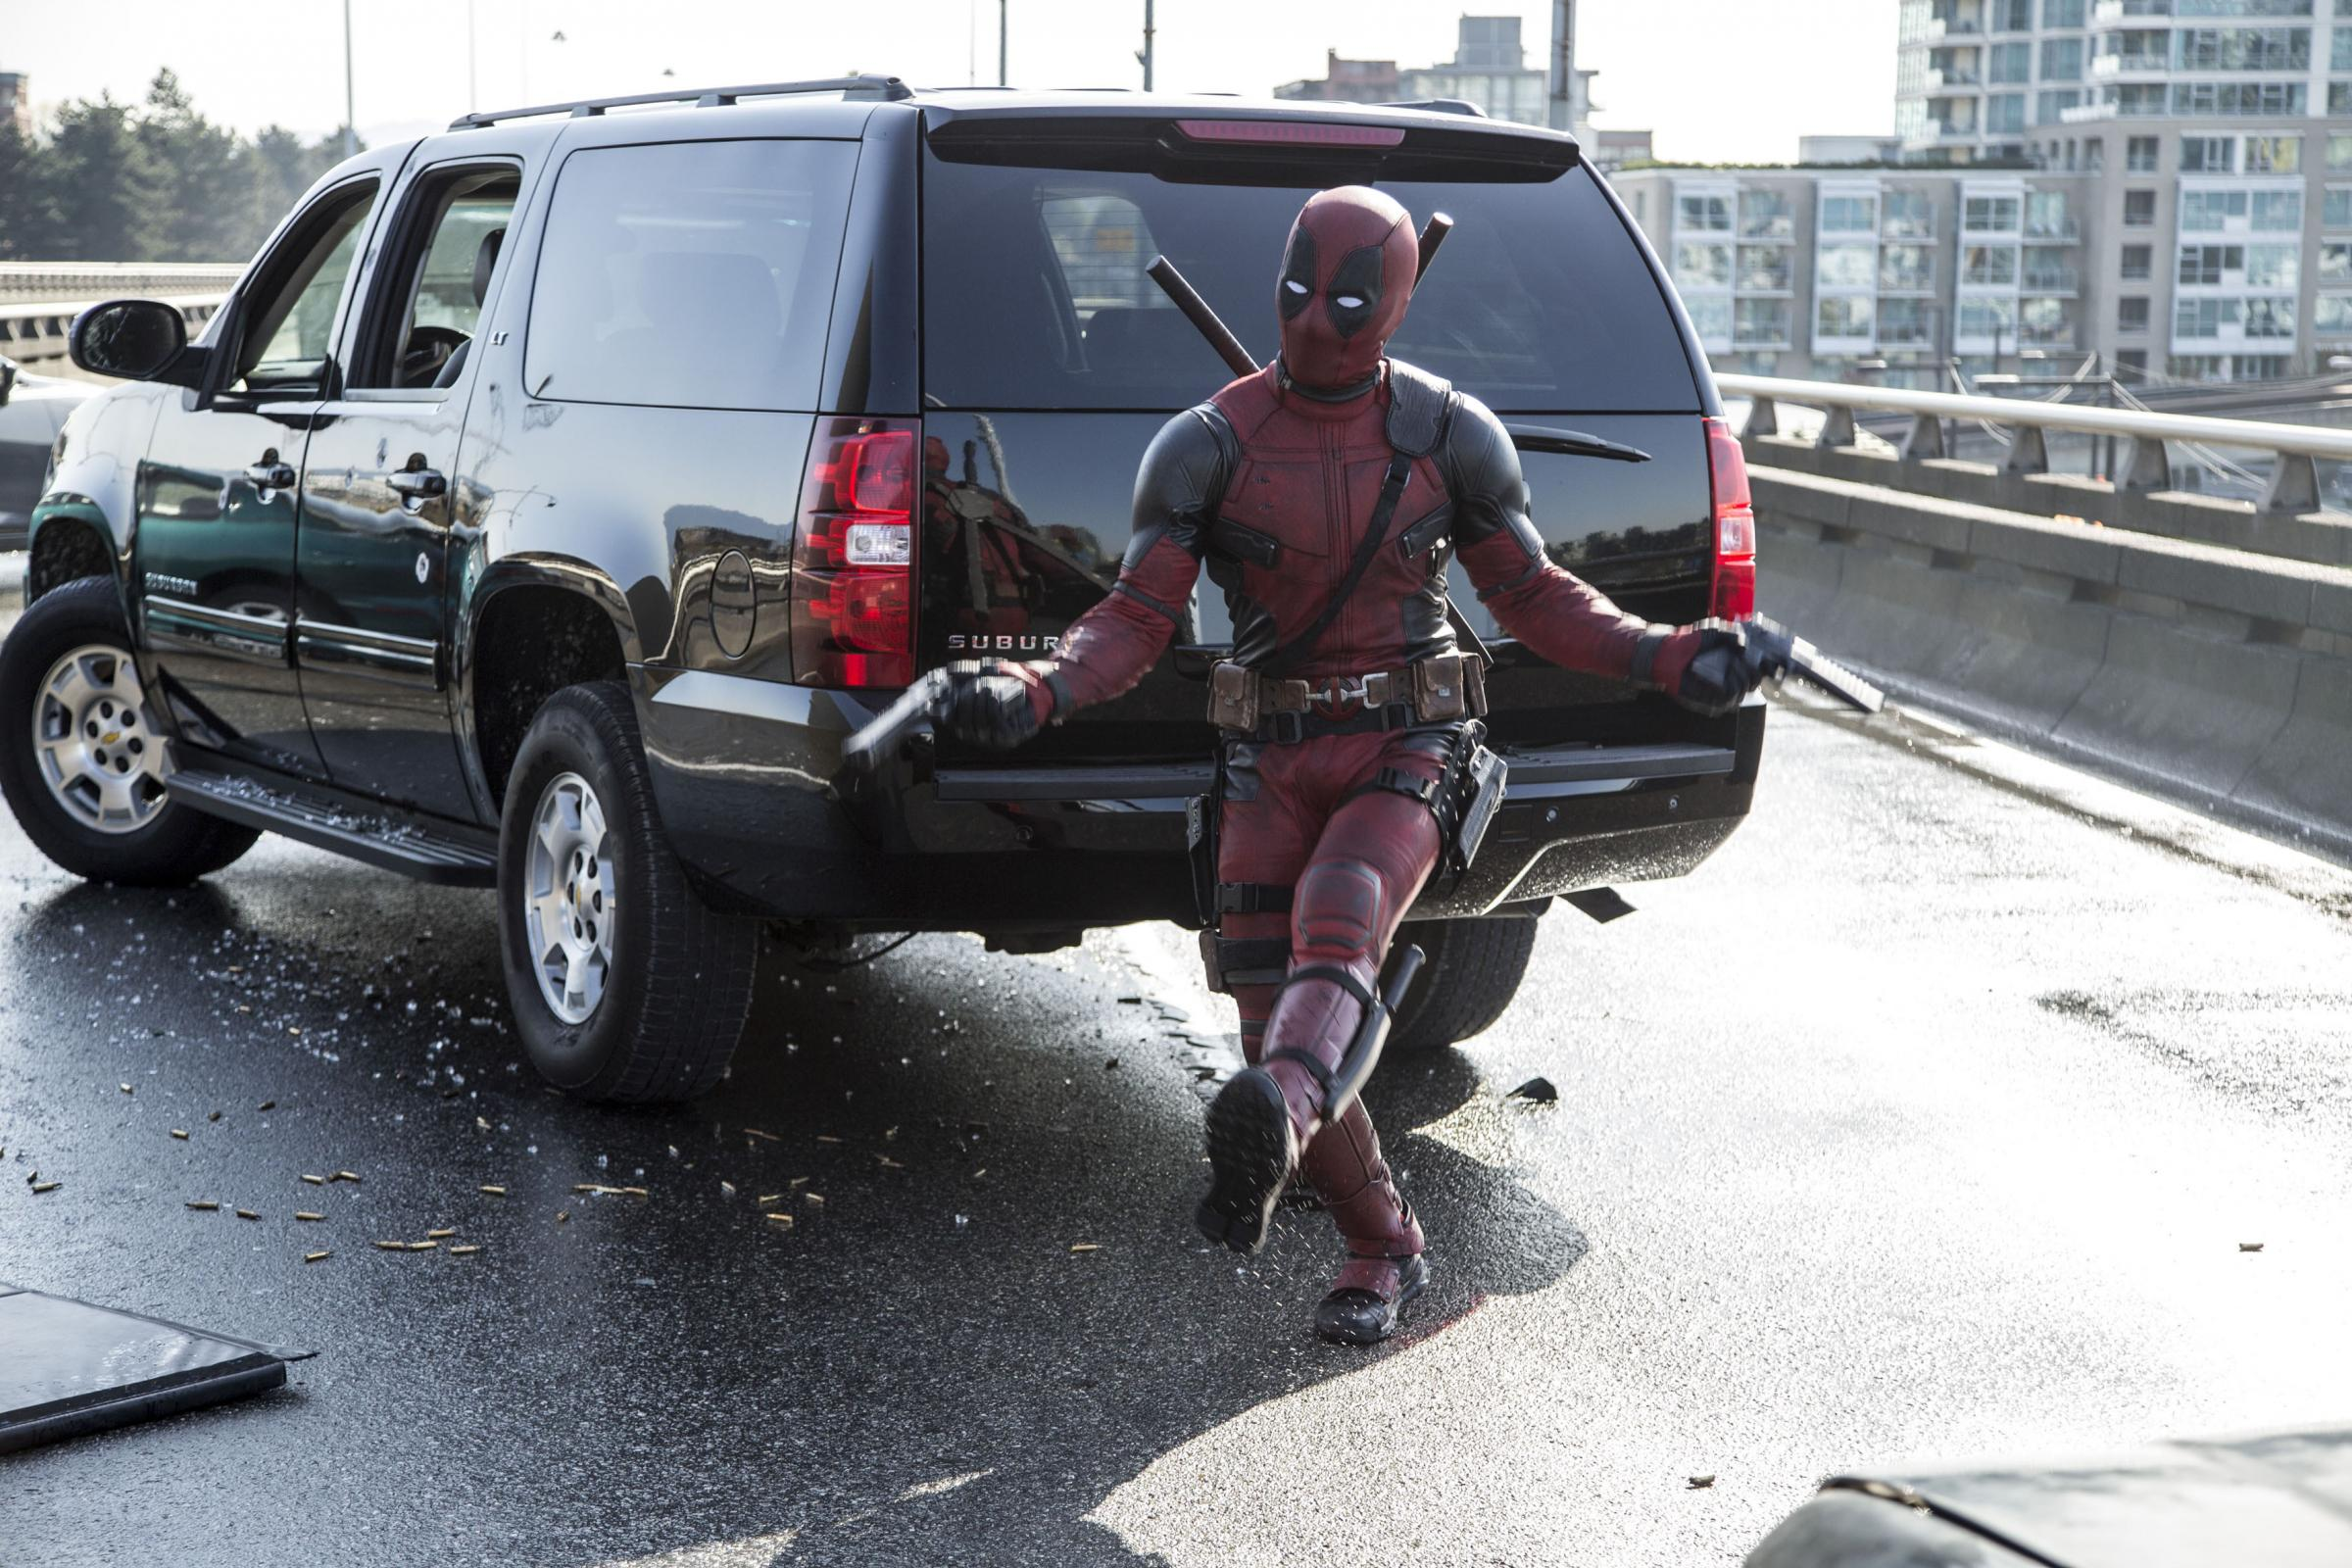 Deadpool movie review: Nothing much happens in Ryan Reynolds film